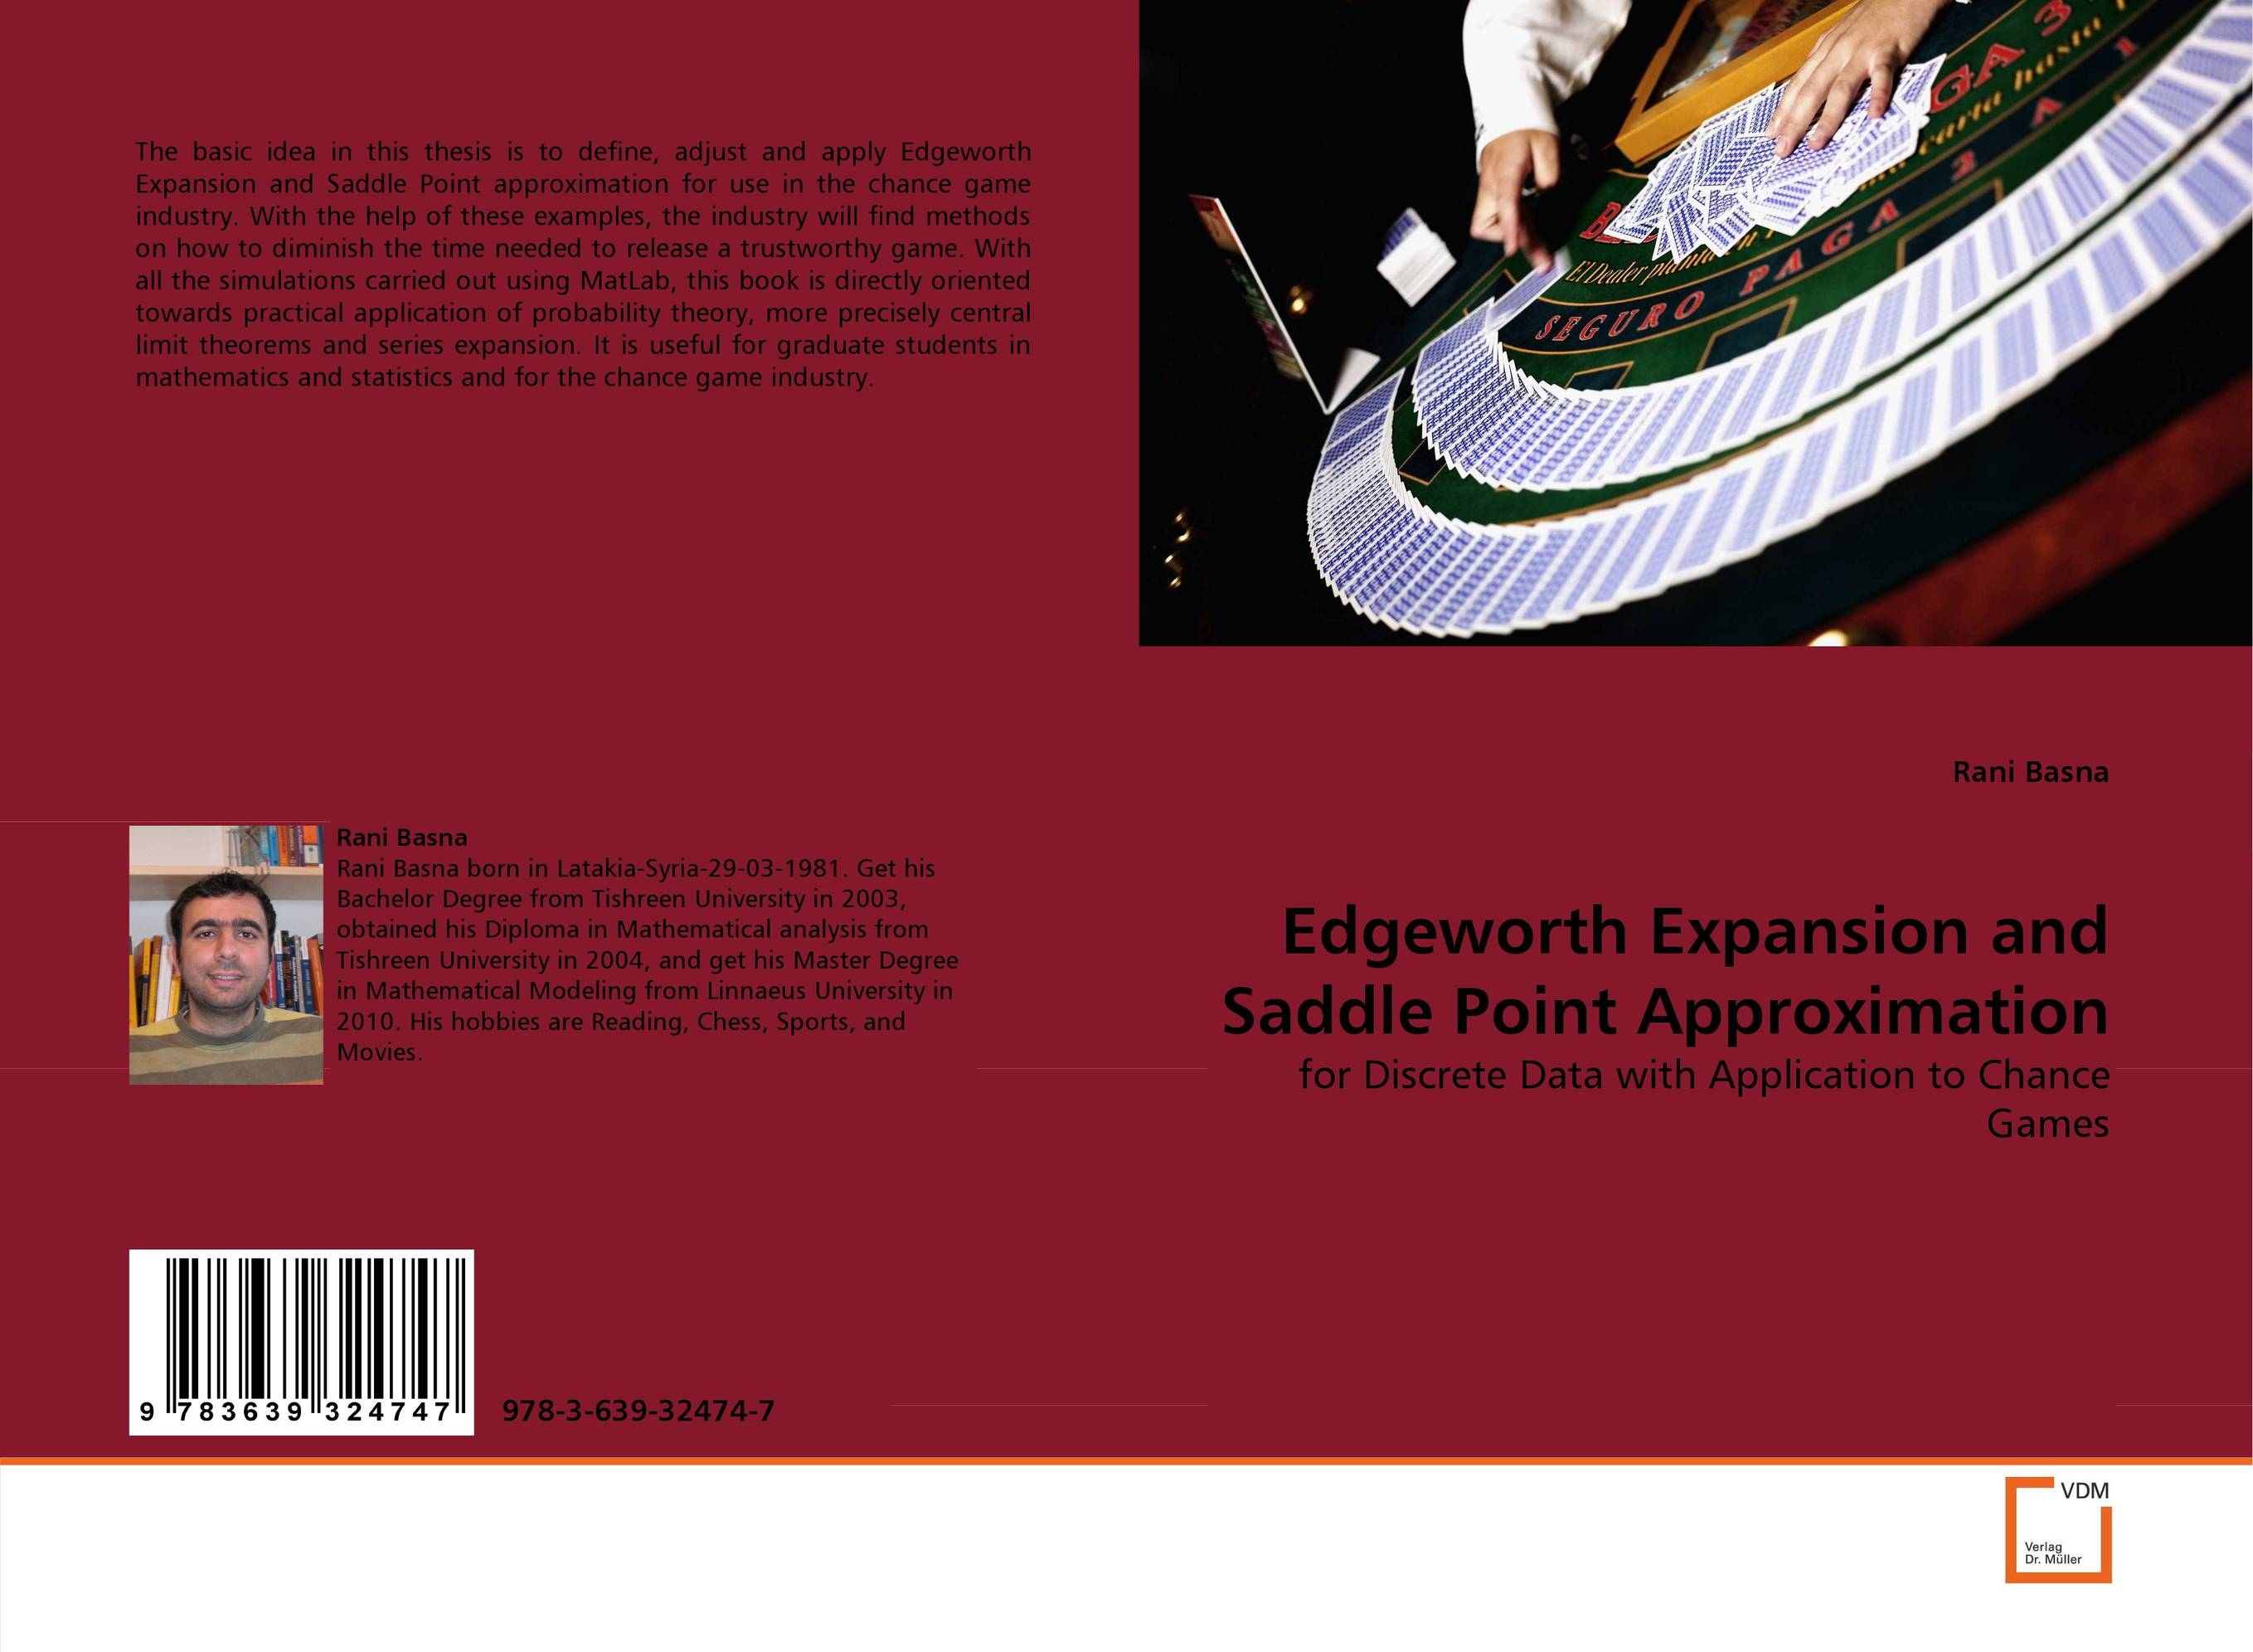 Edgeworth Expansion and Saddle Point Approximation